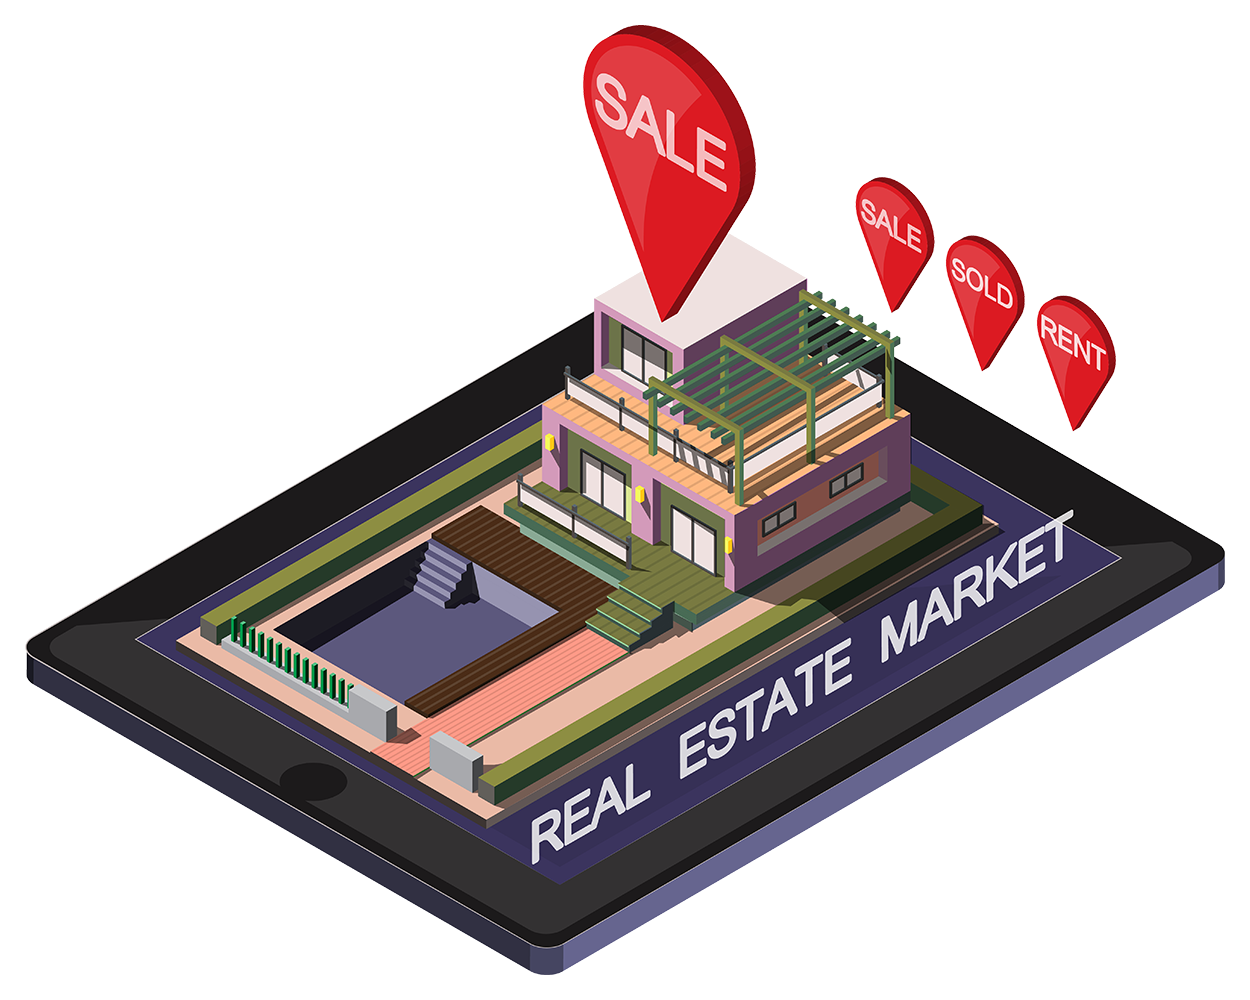 Real Estate Market.